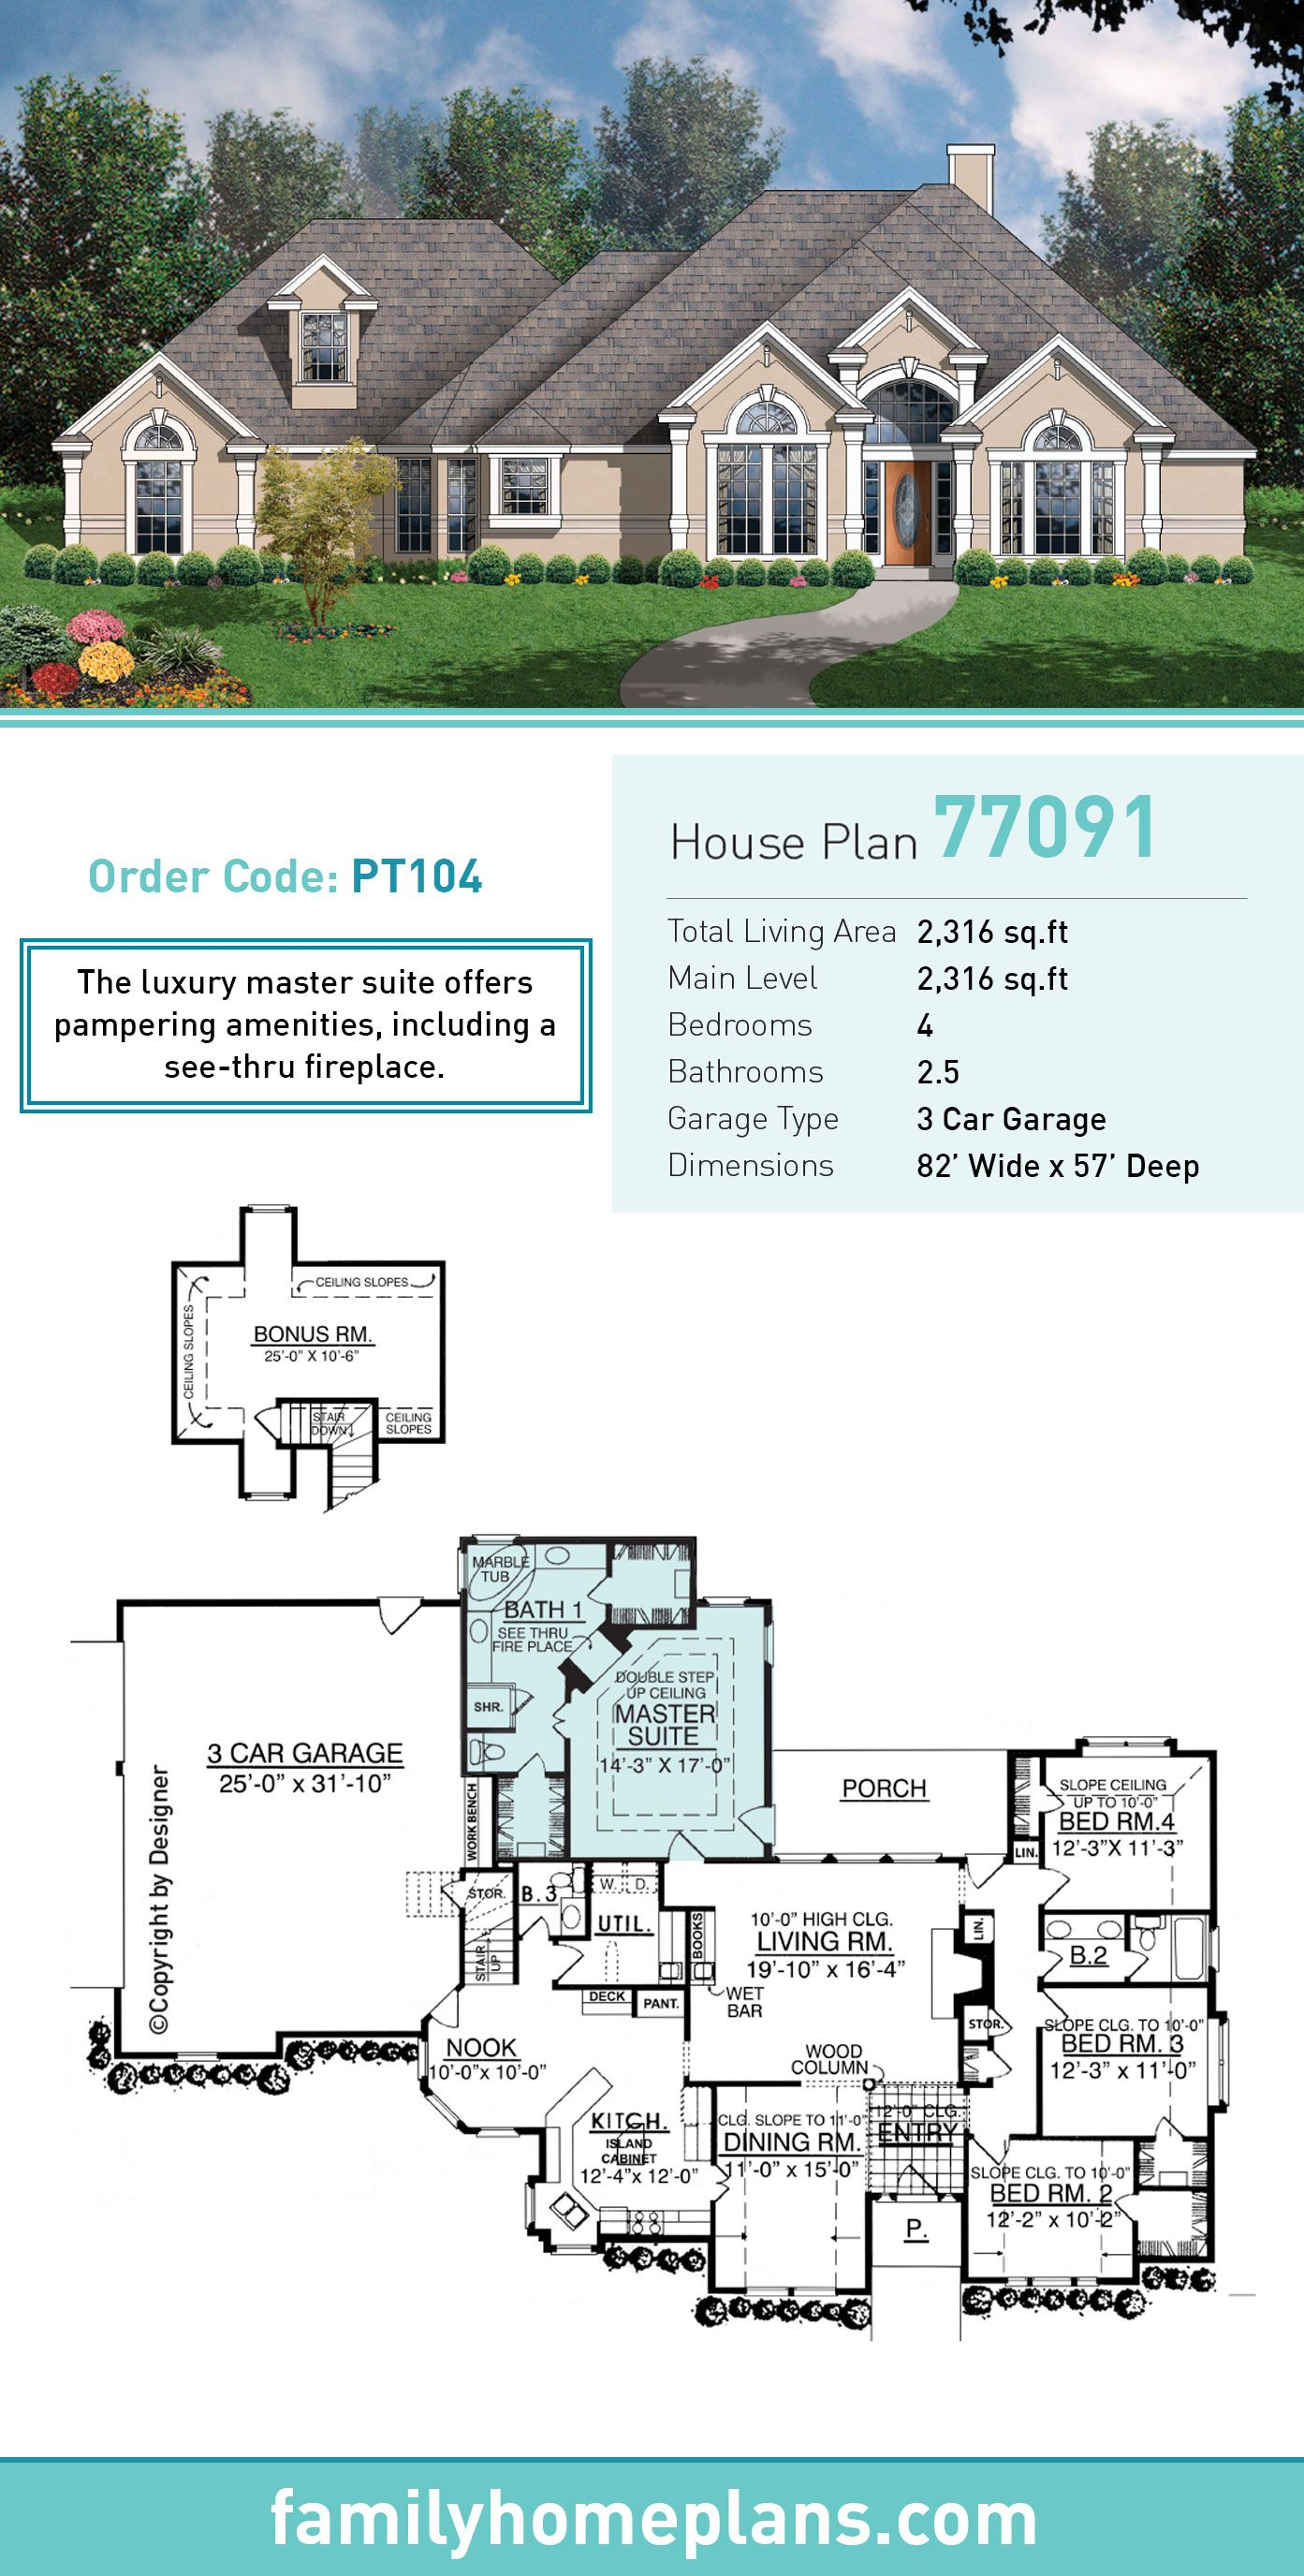 European House Plan 77091 Total Living